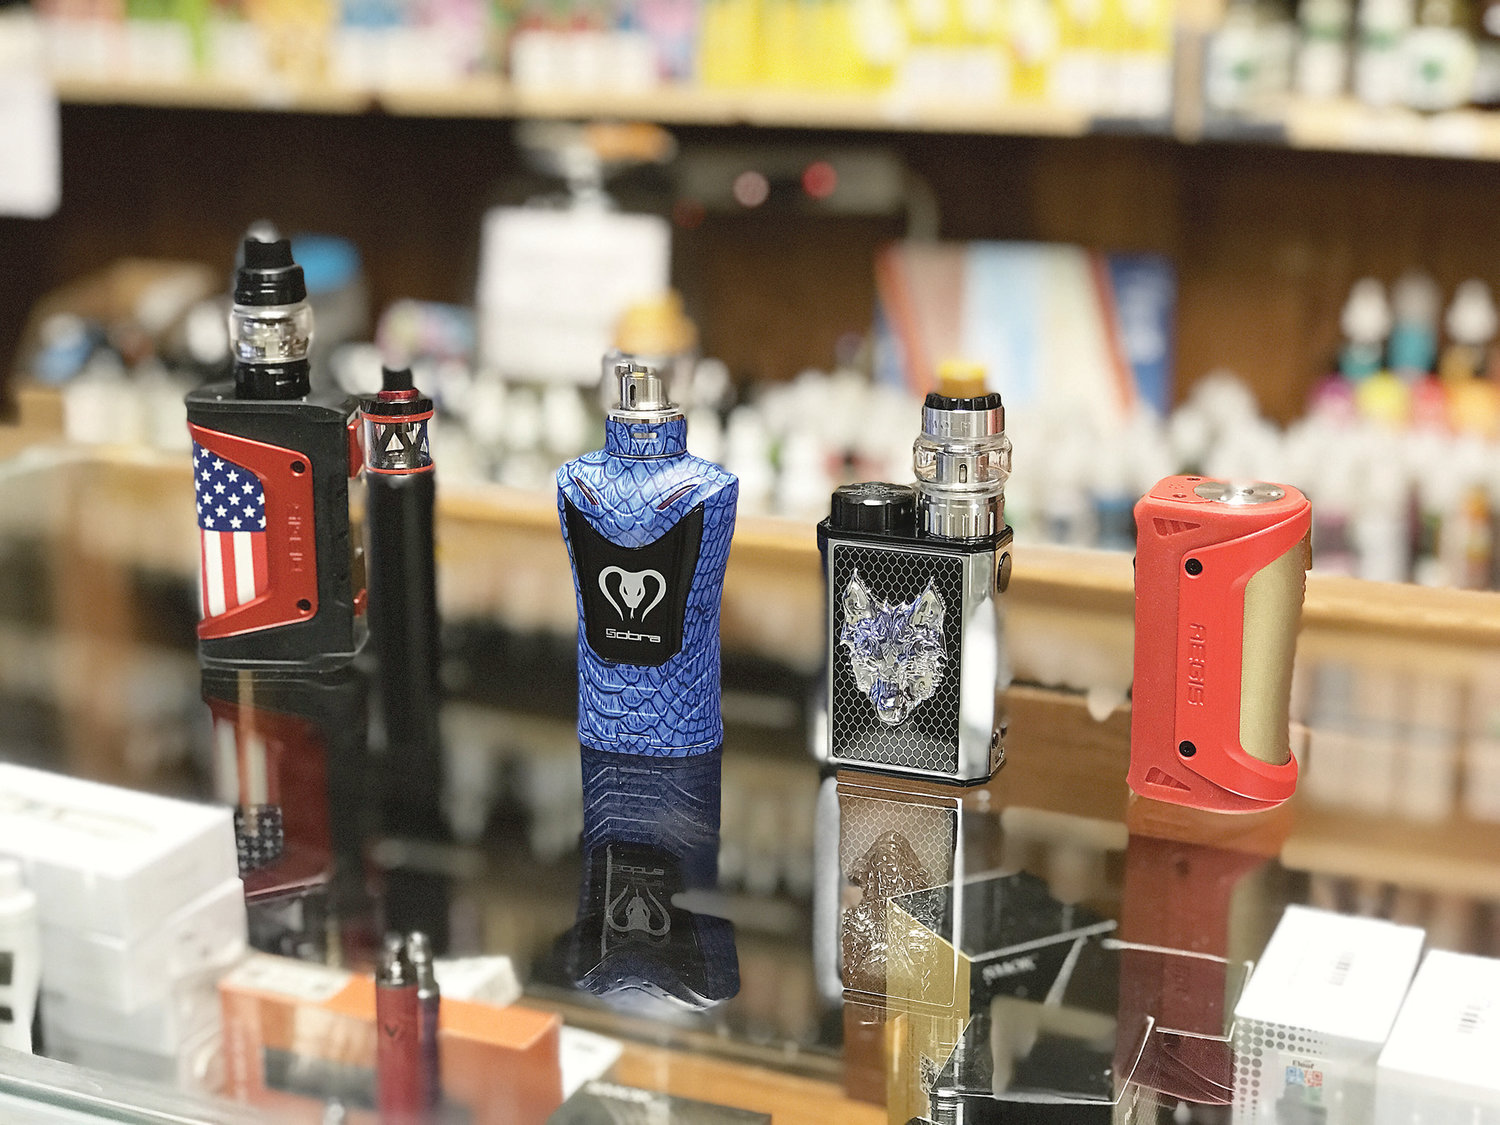 These are examples of mods used for vaping. They contain a battery, a coil and a reservoir for the nicotine juice.